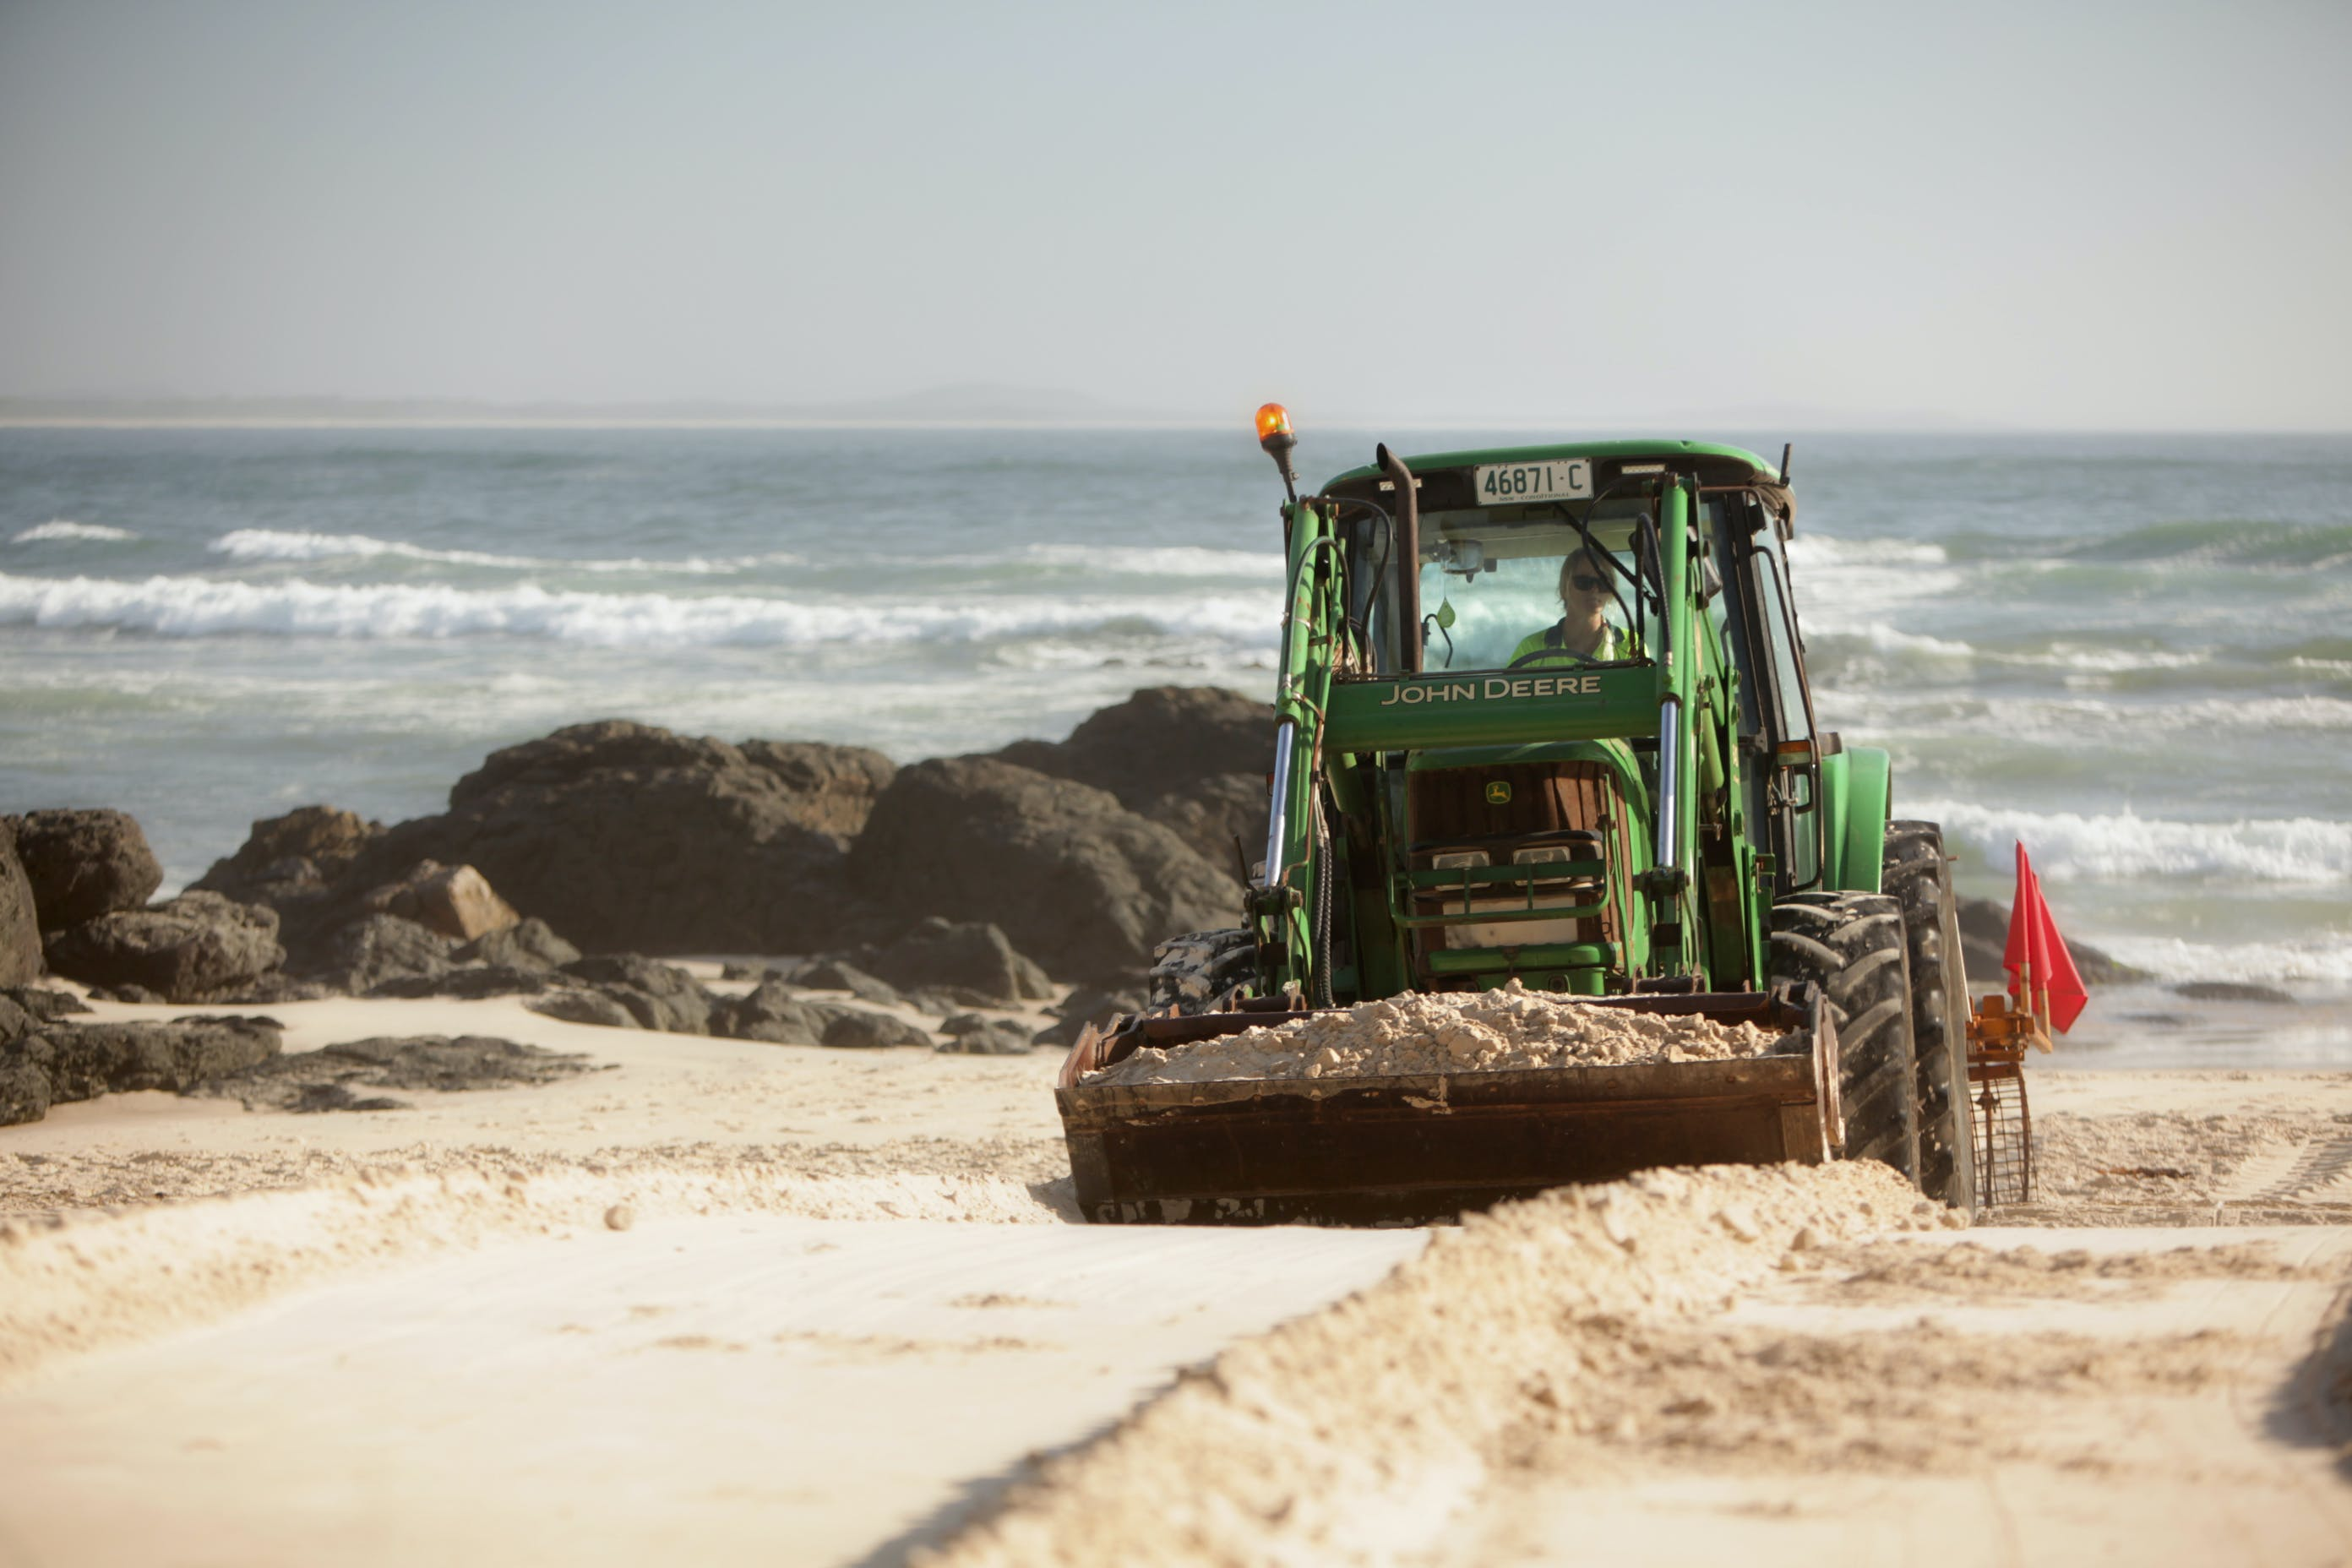 Maintaining parks, reserves and beachs